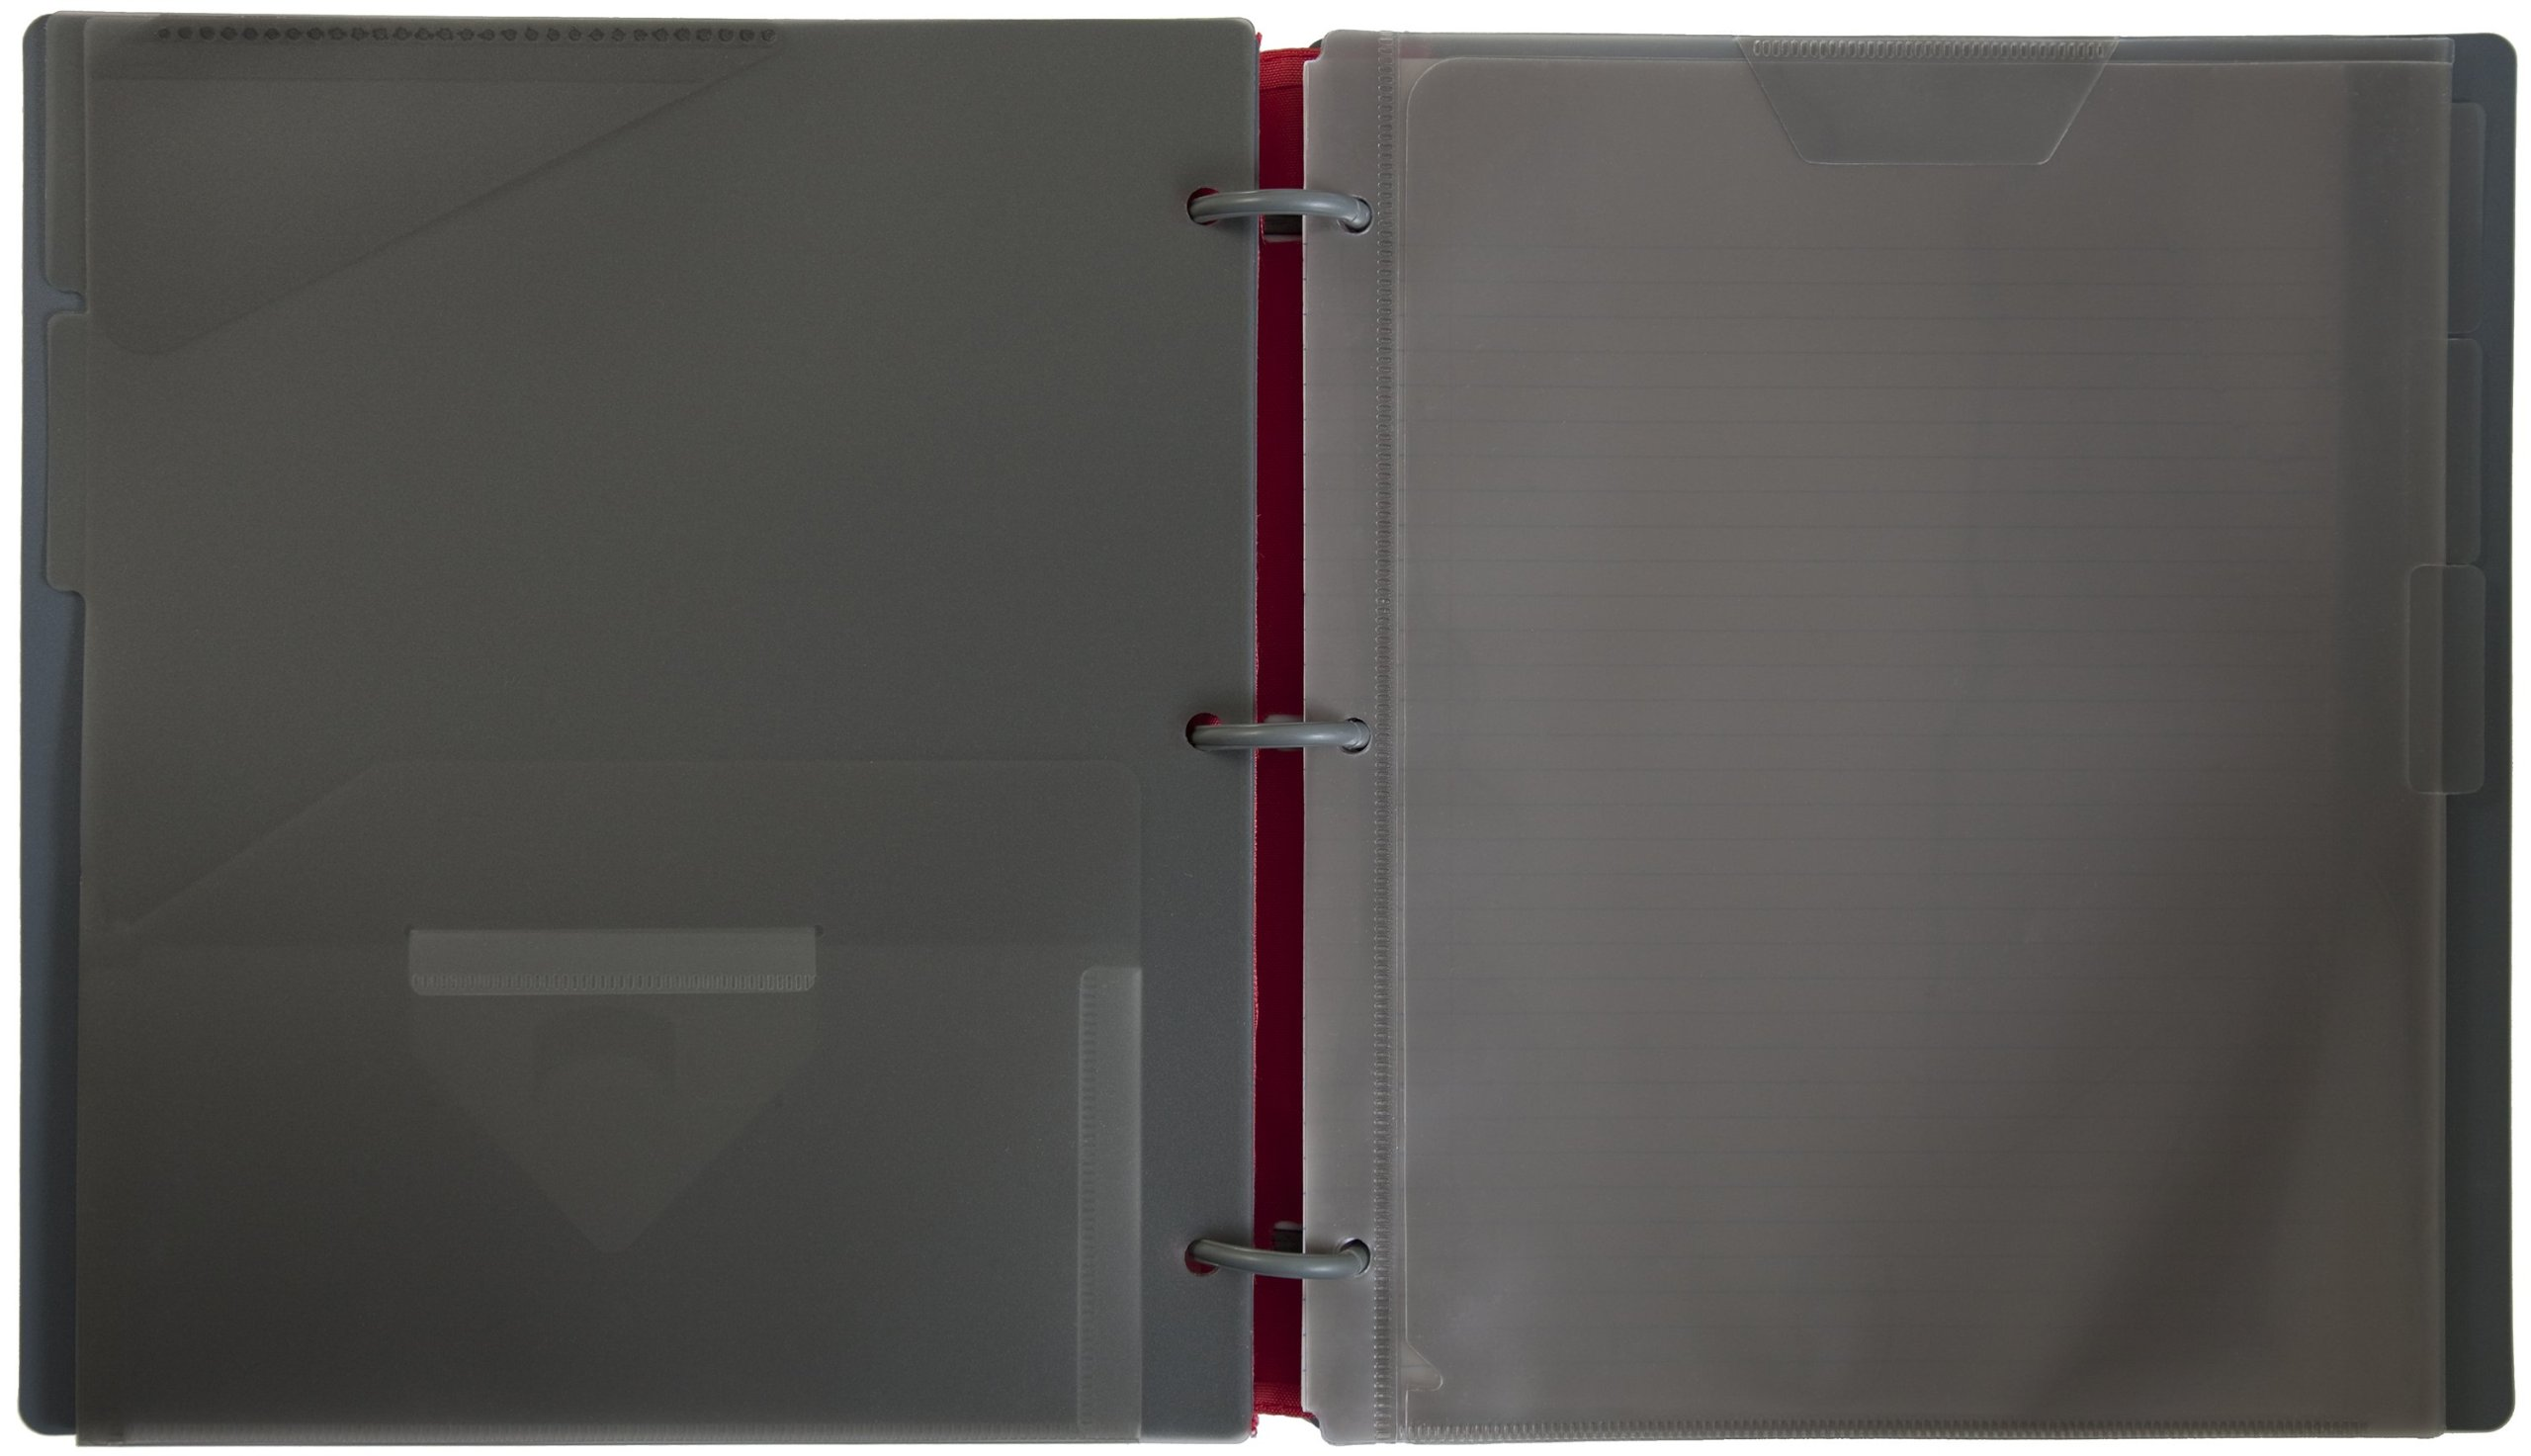 Five Star Flex Hybrid NoteBinder, 1 Inch Binder, Notebook and Binder All-in-One, Blue (72011) by Mead (Image #2)